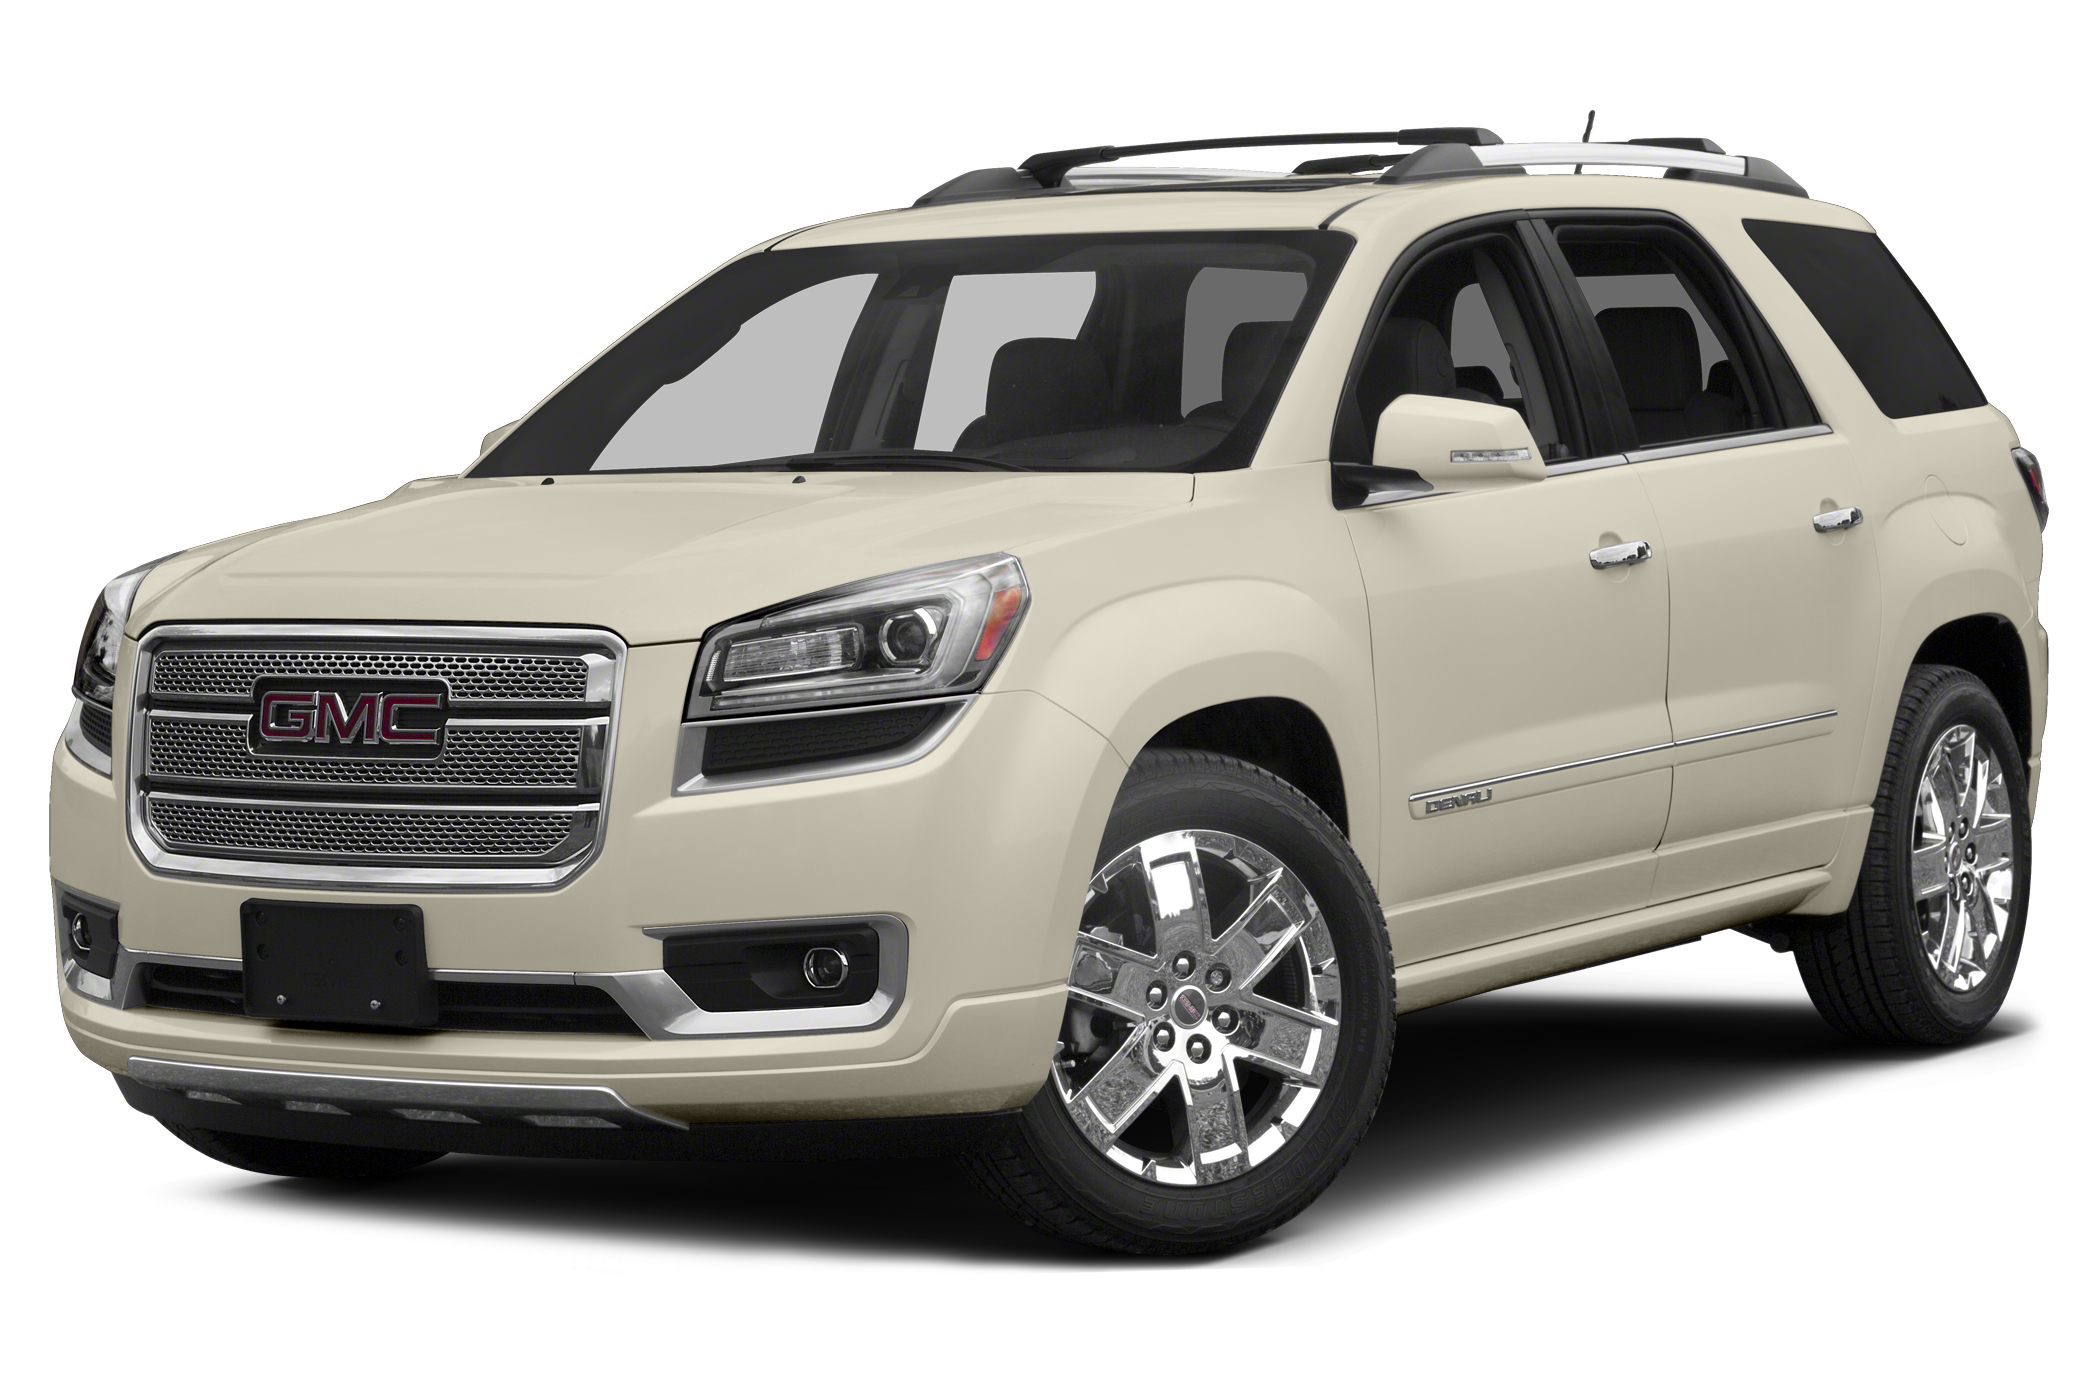 city denali and range year places for new acadia dealer area body style in model gmc search used seattle sale type price miles max services make awd